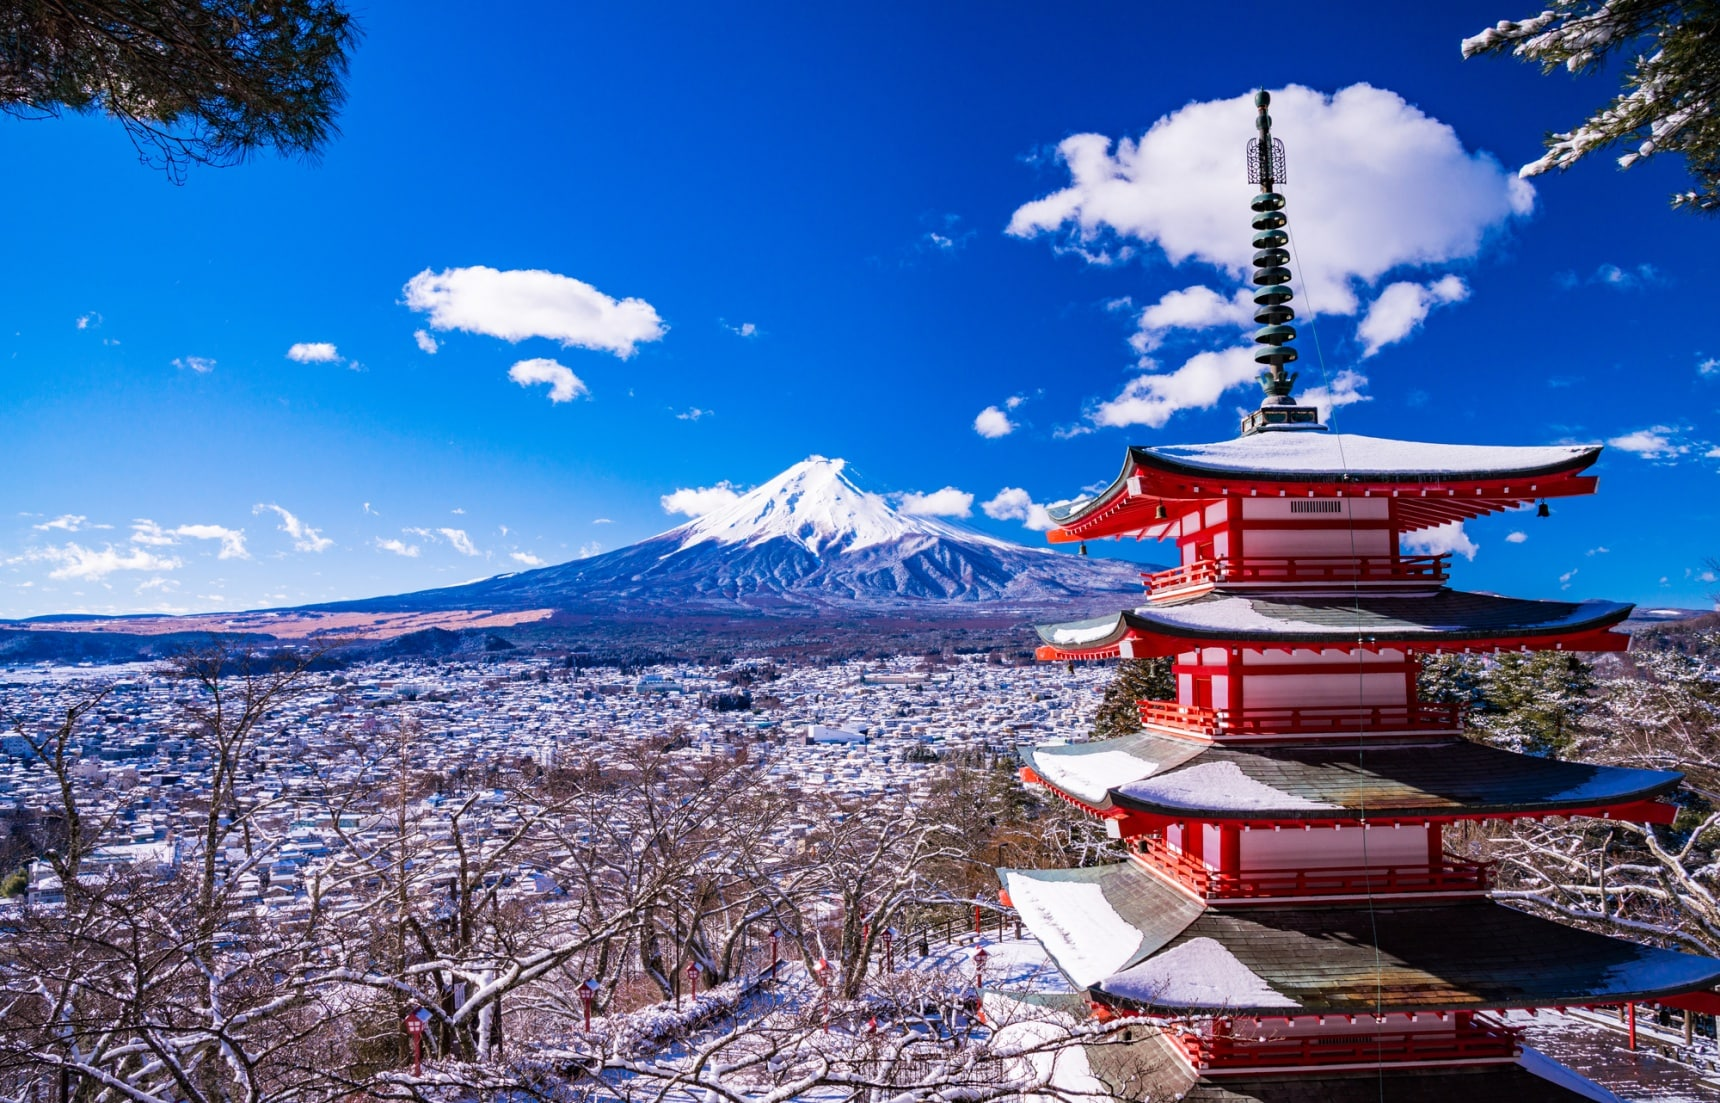 Winter Tips for Visiting Japan